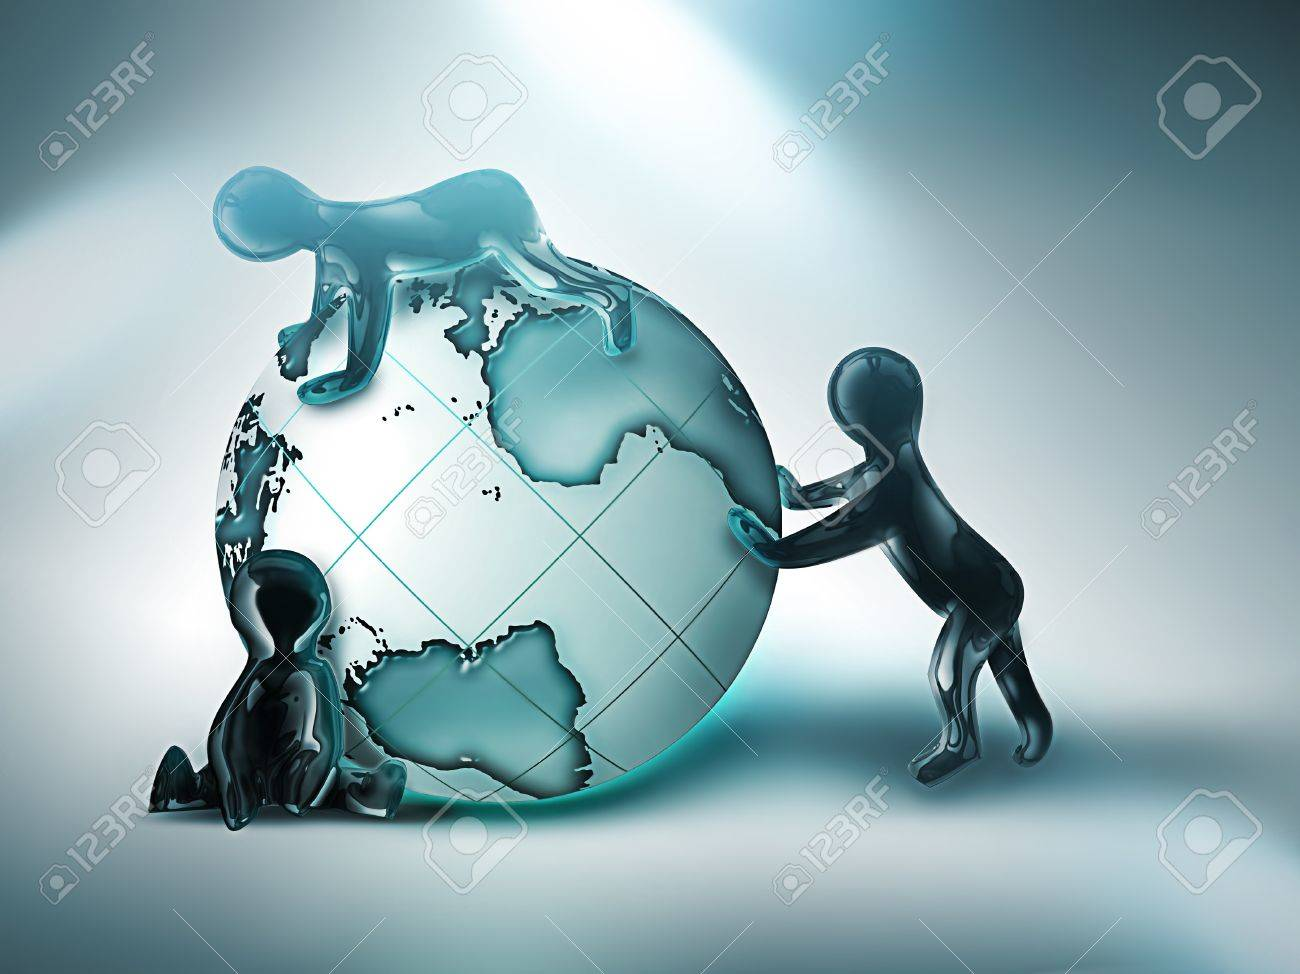 three cartoon person rolling the world on light background Stock Photo - 10691624